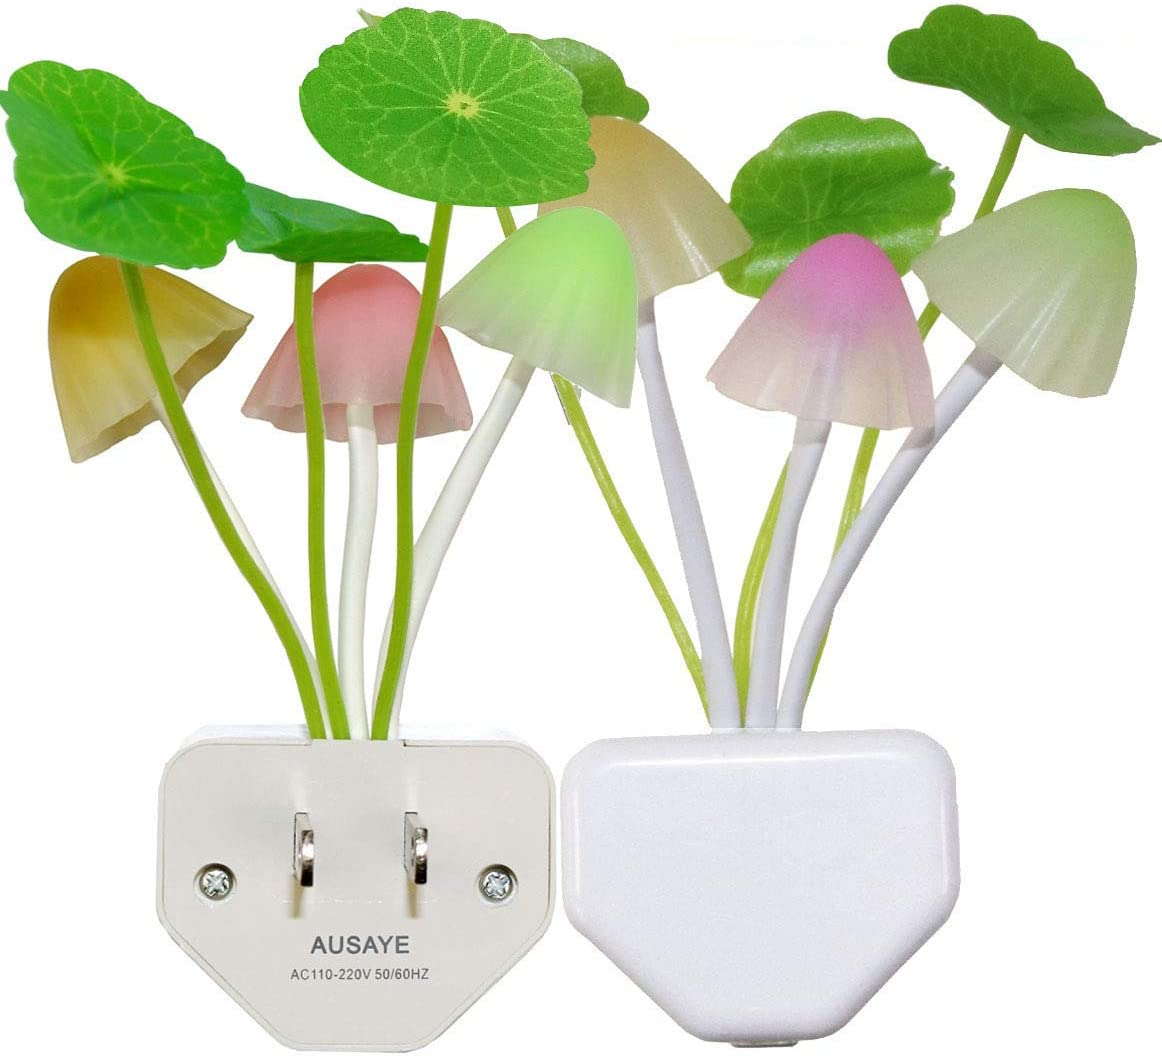 2 Pack Led Night Light w Dusk Sensor Dawn Plug-in 0.6W to Max 64% OFF Cheap mail order sales AUSAYE